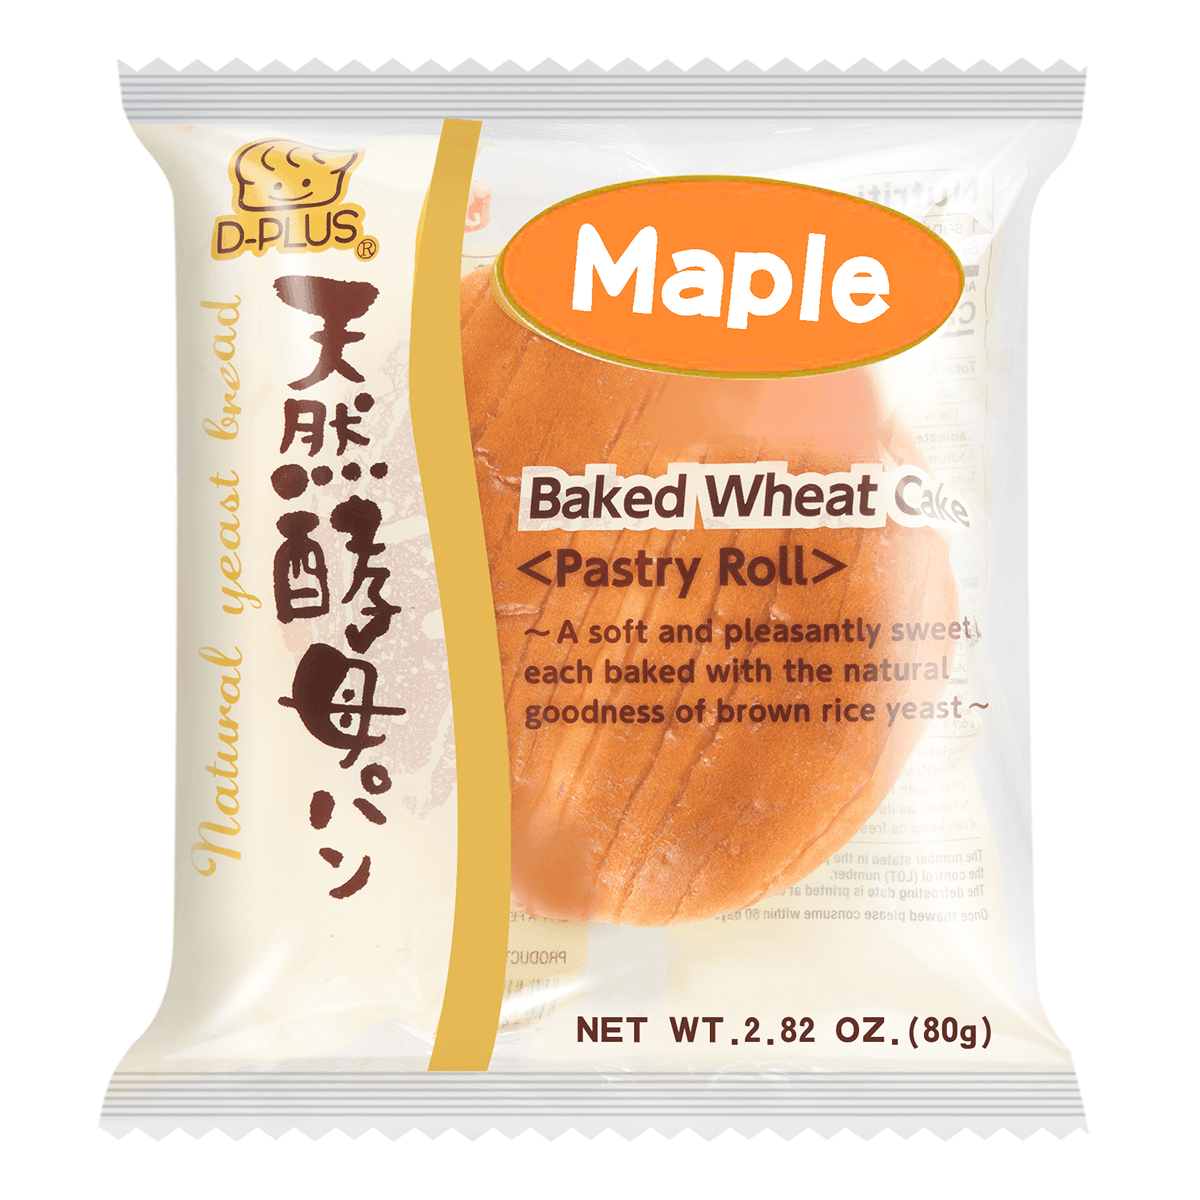 D-PLUS Natural Yeast Bread Maple Syrup Flavor 80g